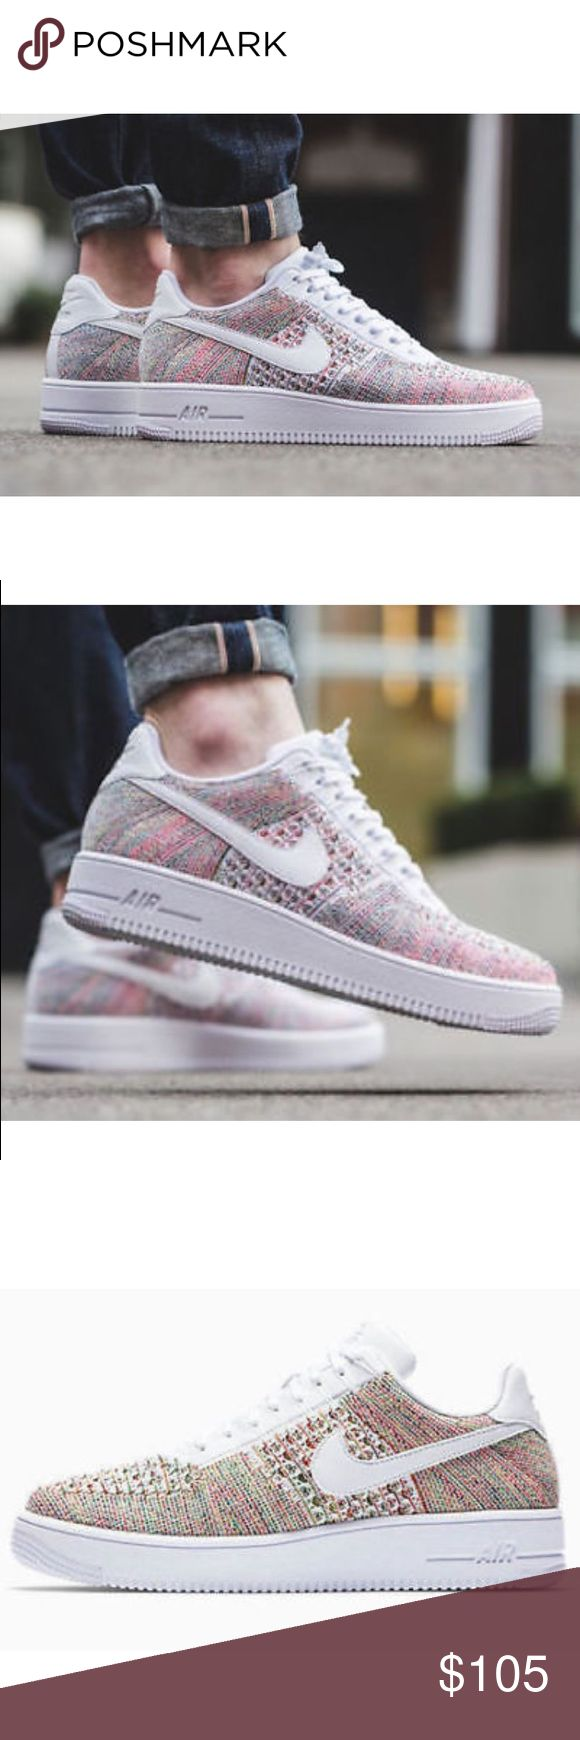 Nike Air Force 1 Ultra Flyknit Shoes Nike Air Force 1 Ultra Flyknit Shoes Yellowstrike 817419 701.     New with box Size 11 Nike AF1 Shoes Sneakers